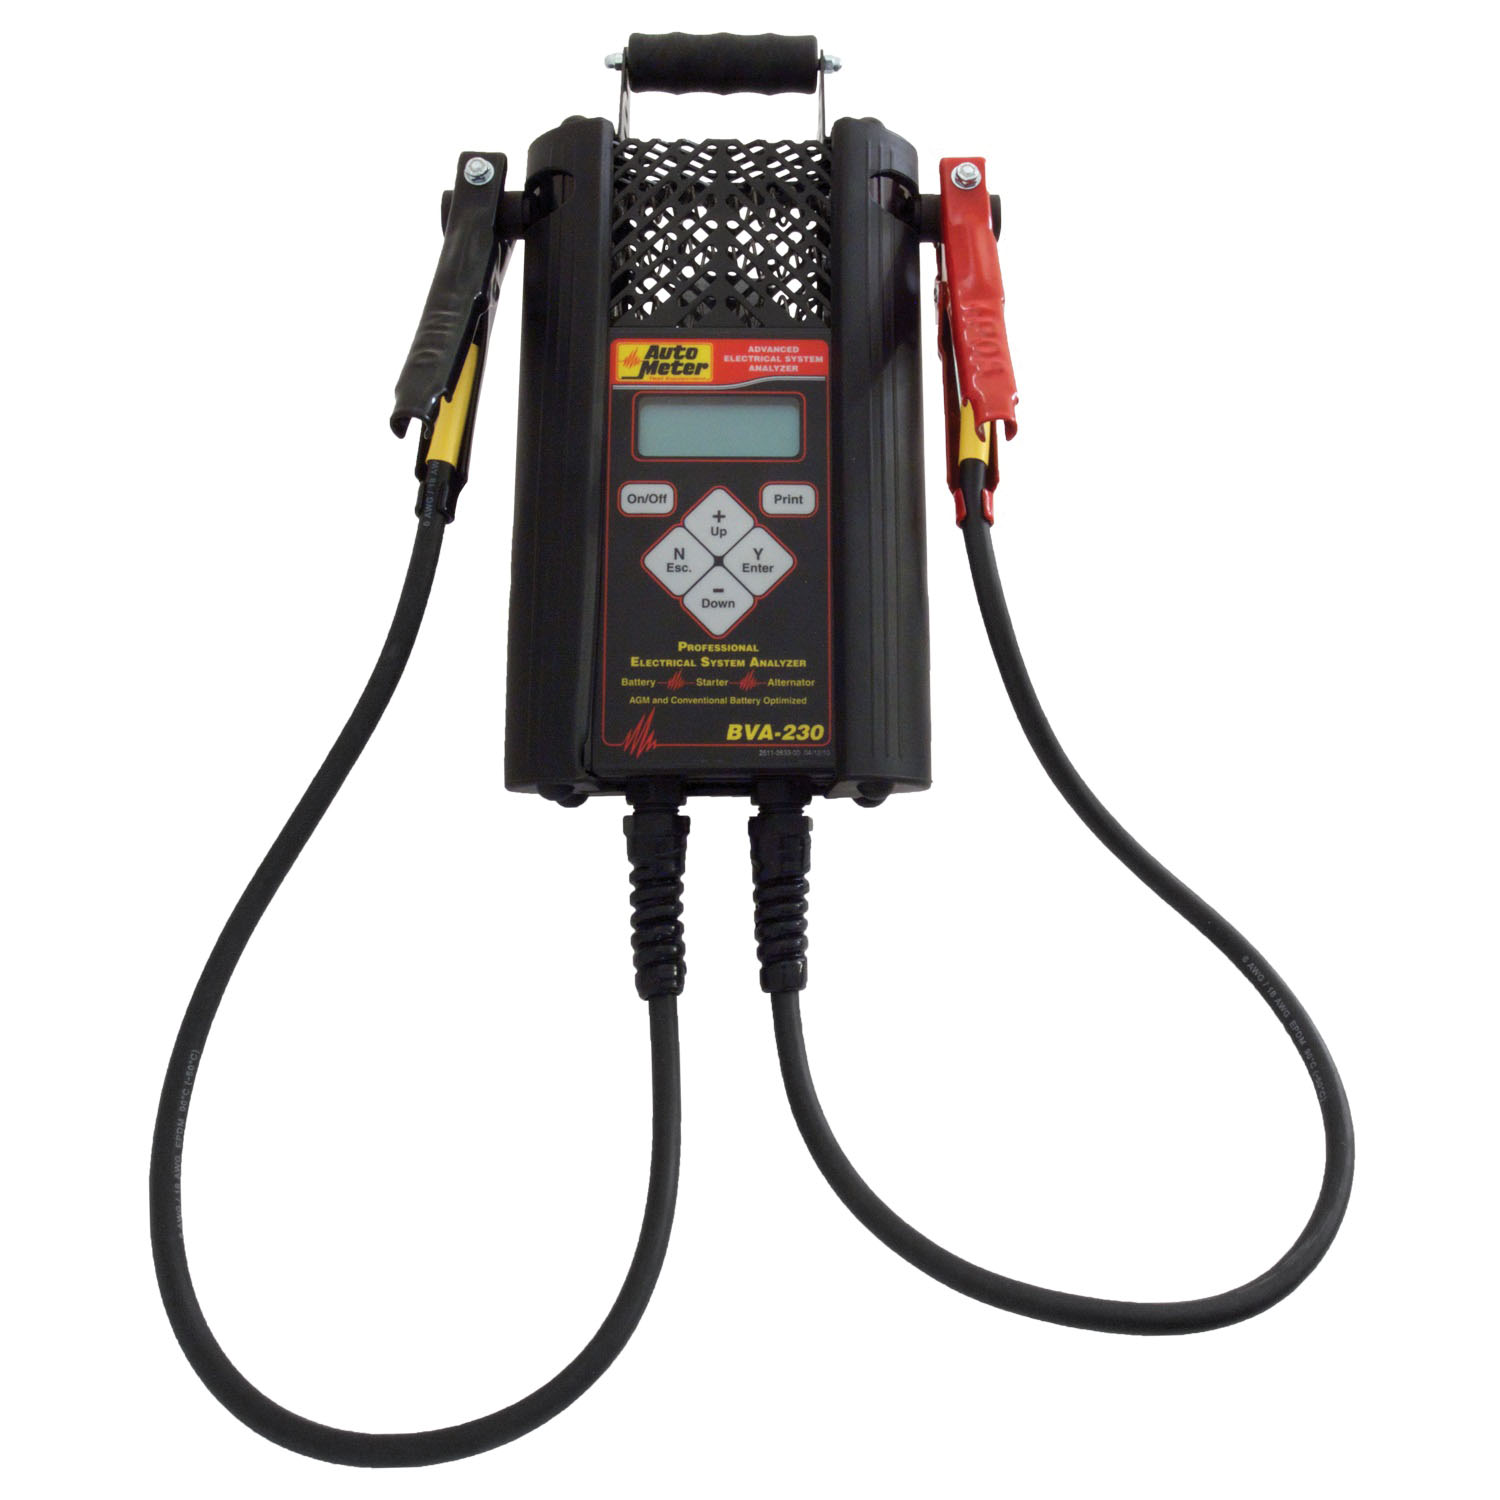 Auto Meter Products Rugged Handheld Electrical System Analyzer w/120 Amp Load - AGM SLI and Deep Cycle Optimized